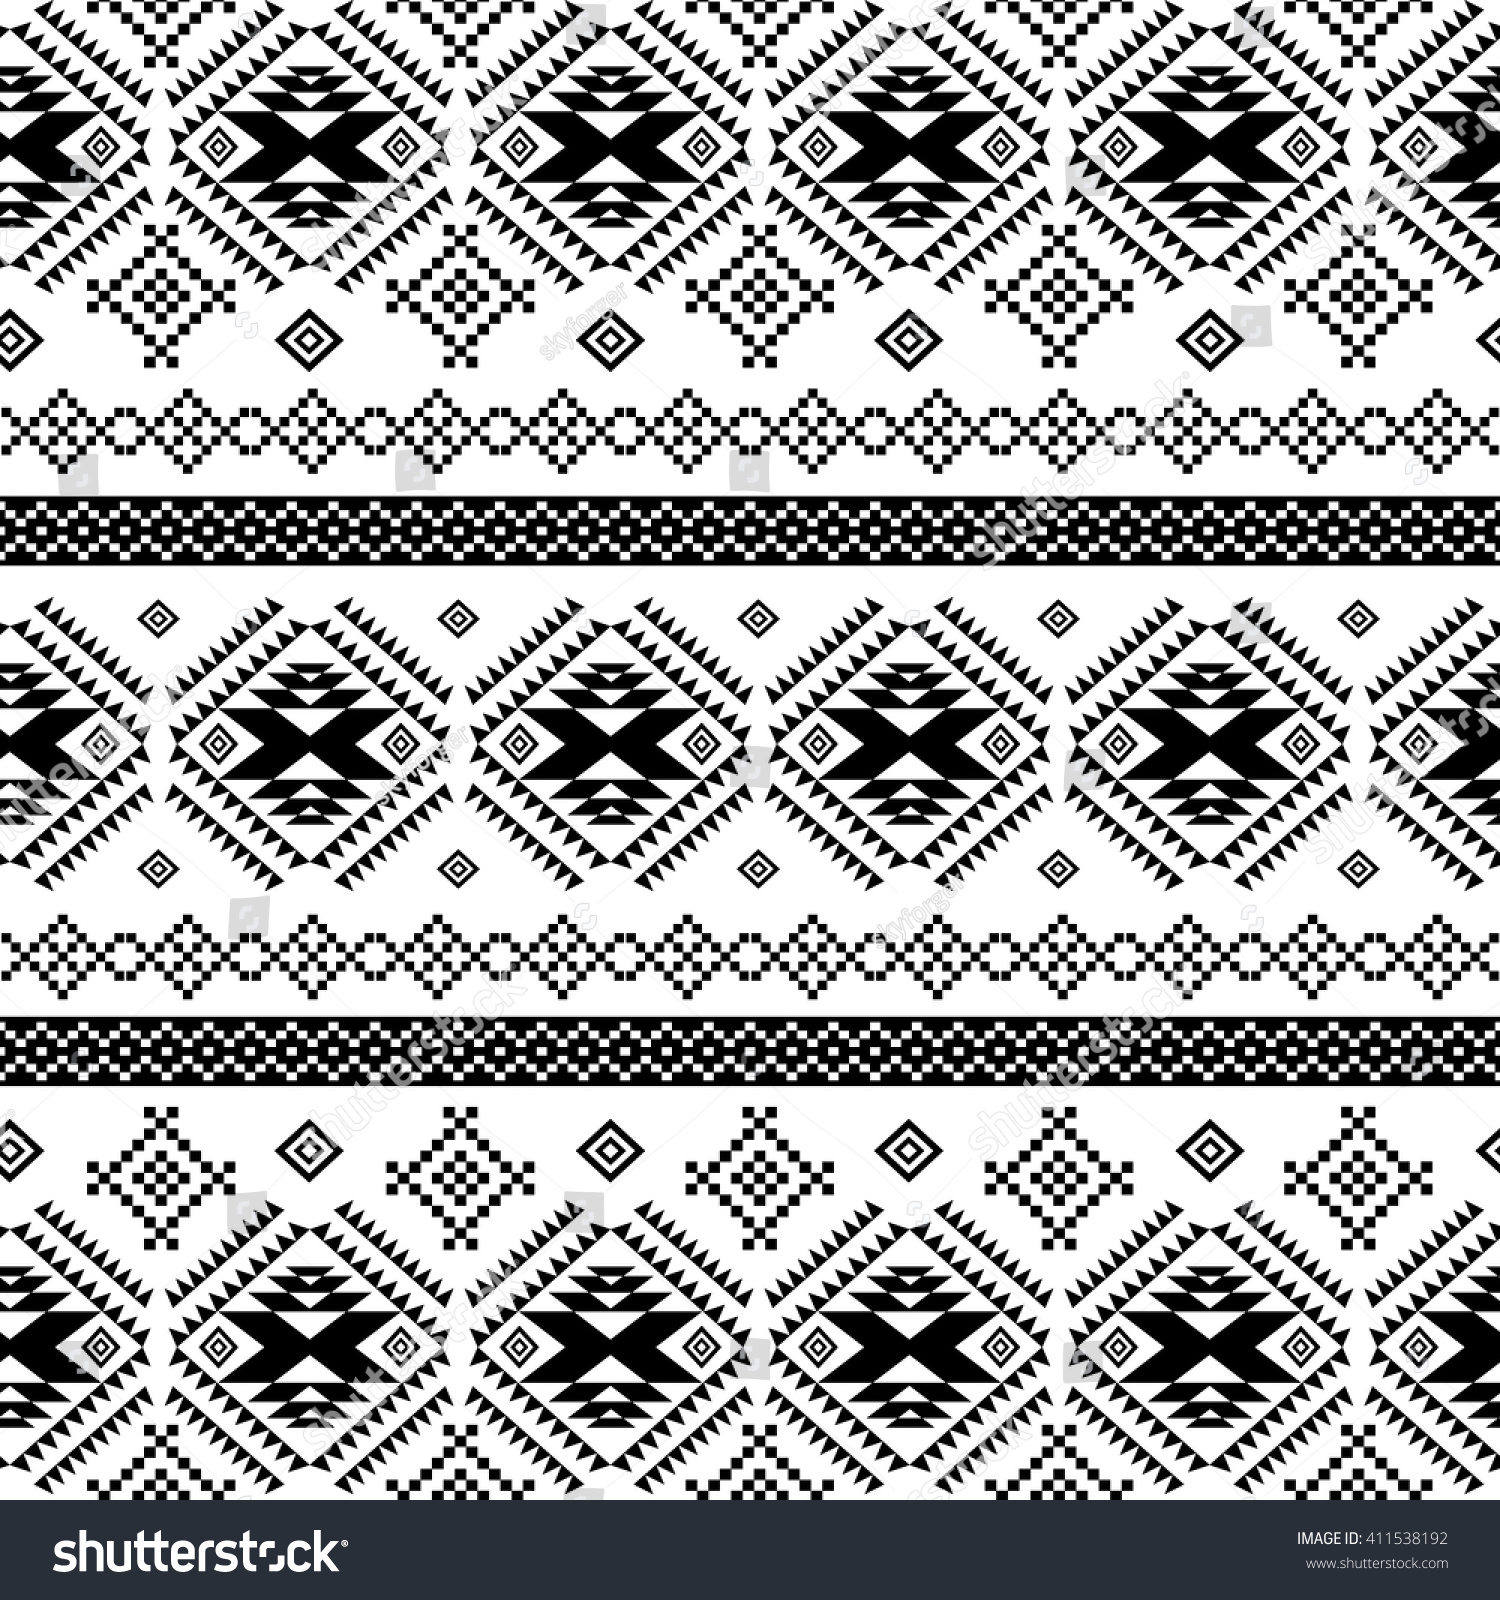 Background geometric mexican patterns seamless vector zigzag maya - Seamless Ethnic Textile Pattern Background With Geometric Aztec Maya Peru Mexican Tribal